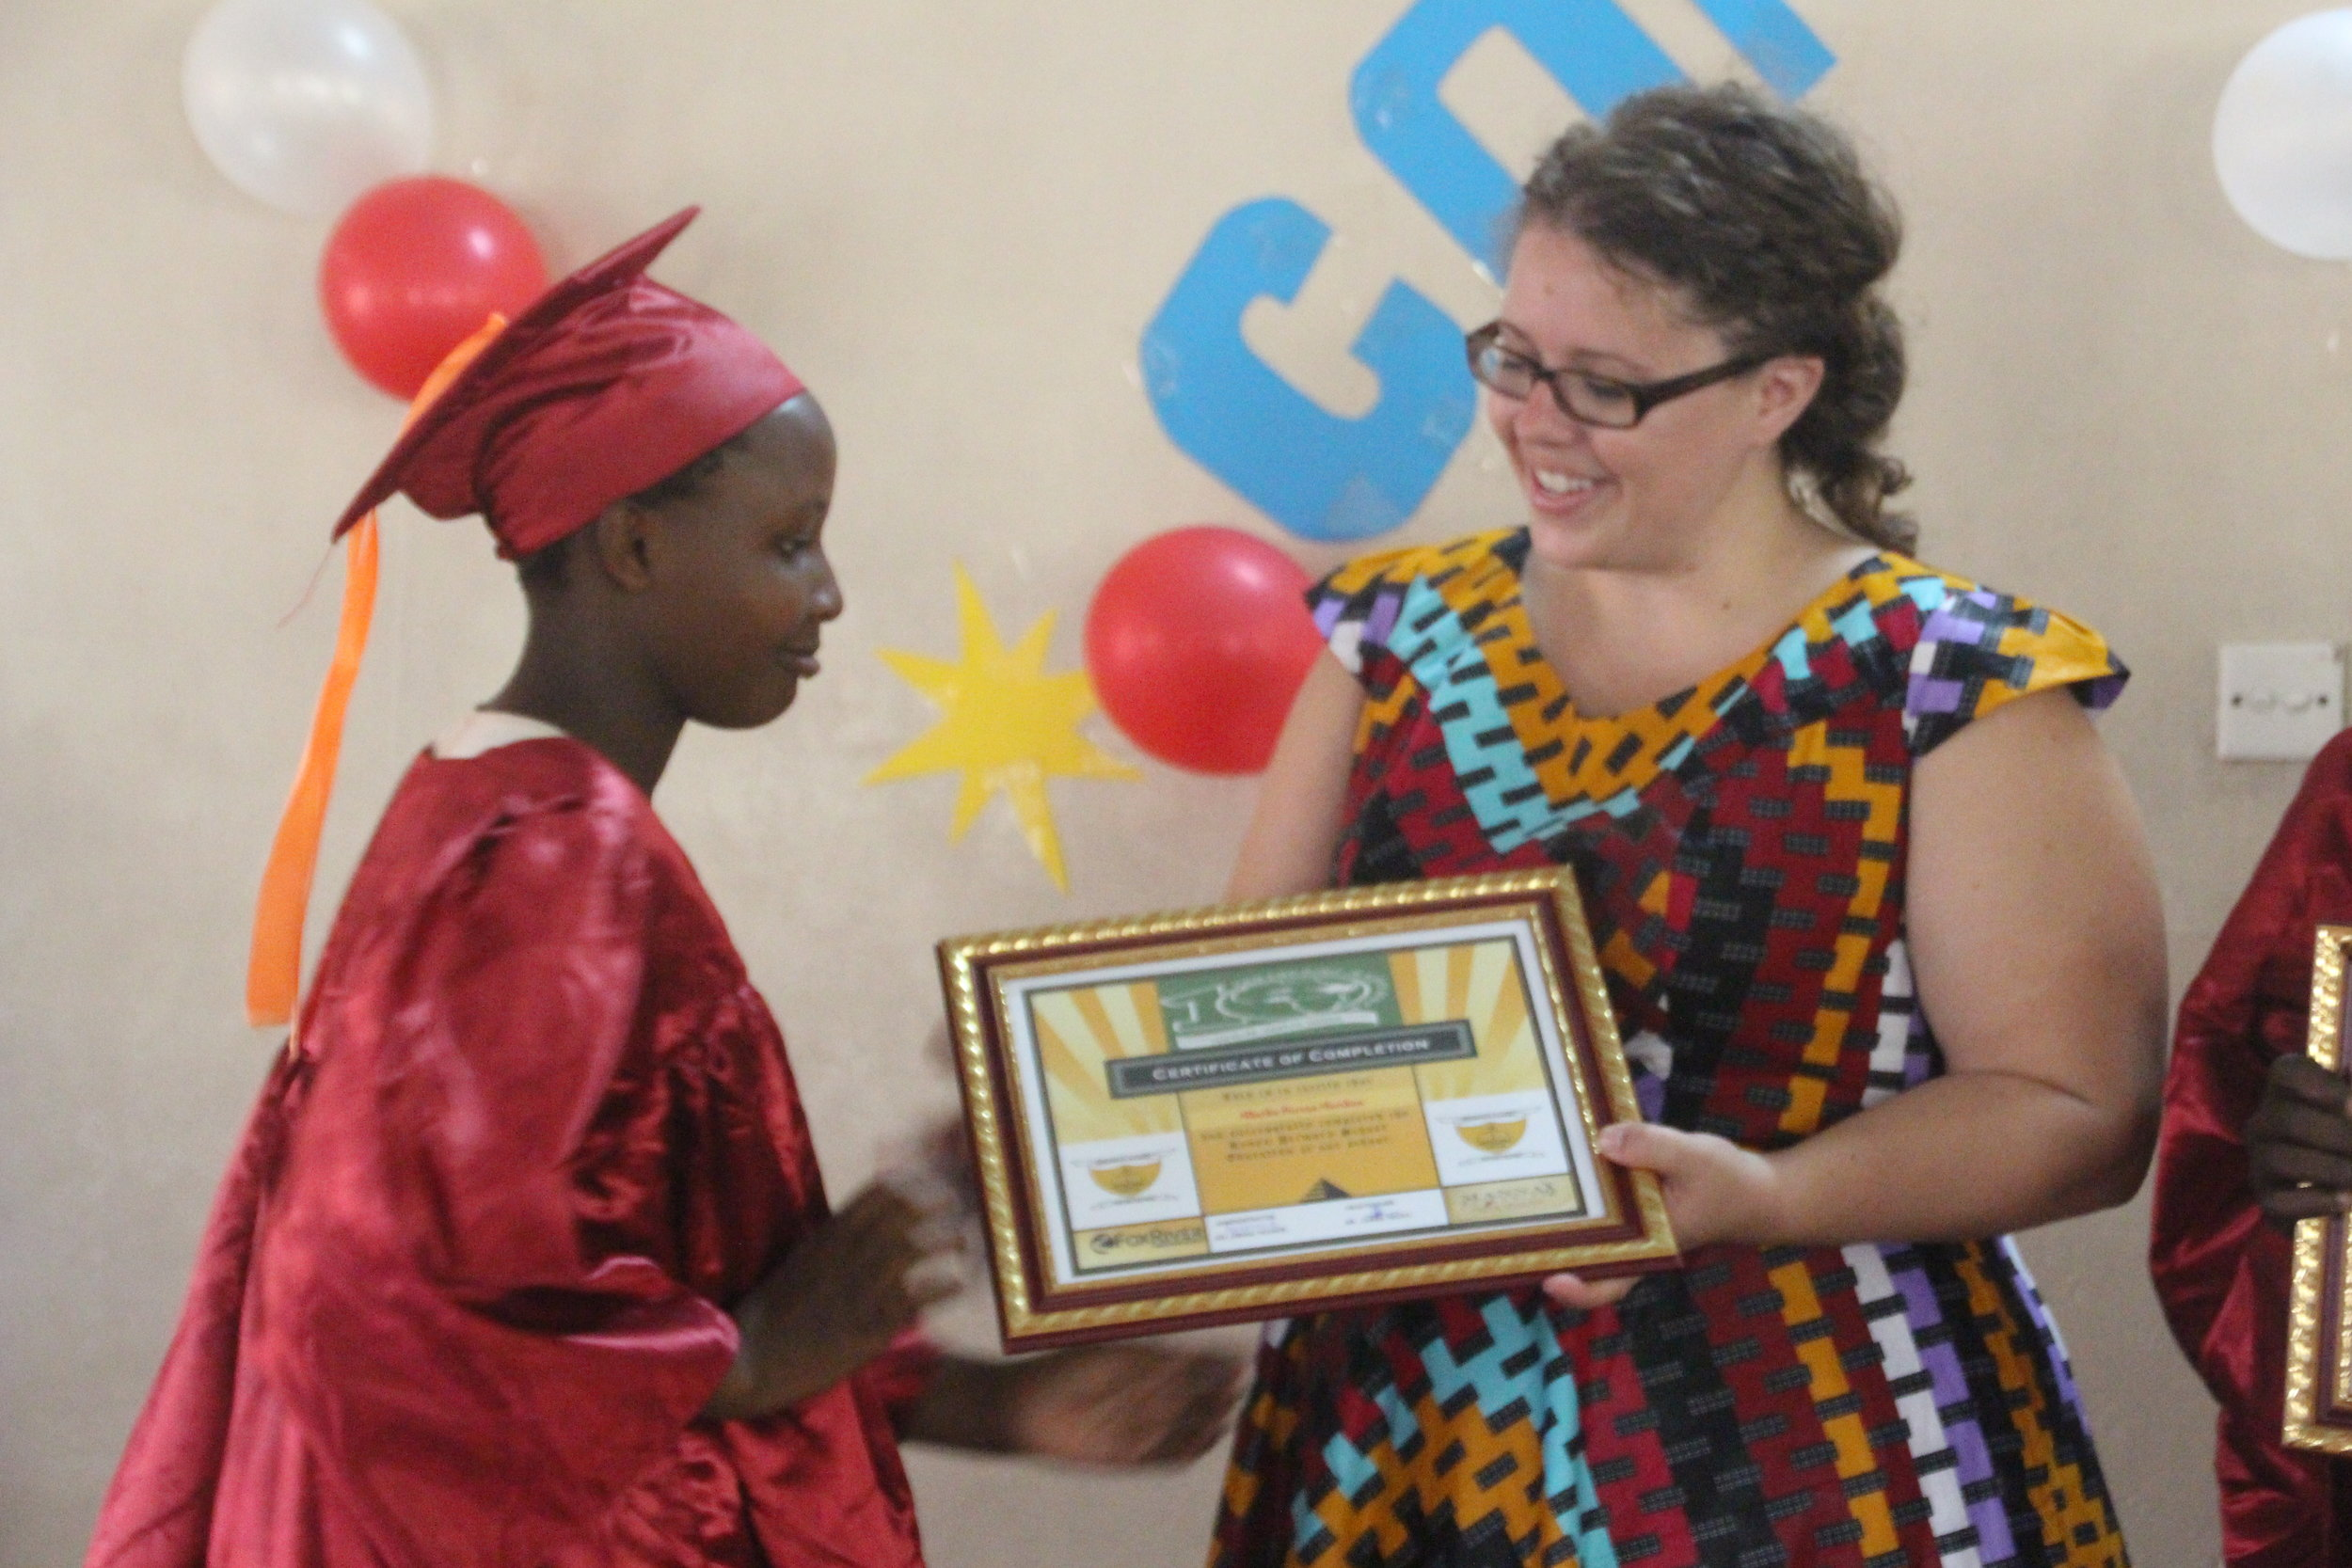 Receiving their certificate of completion